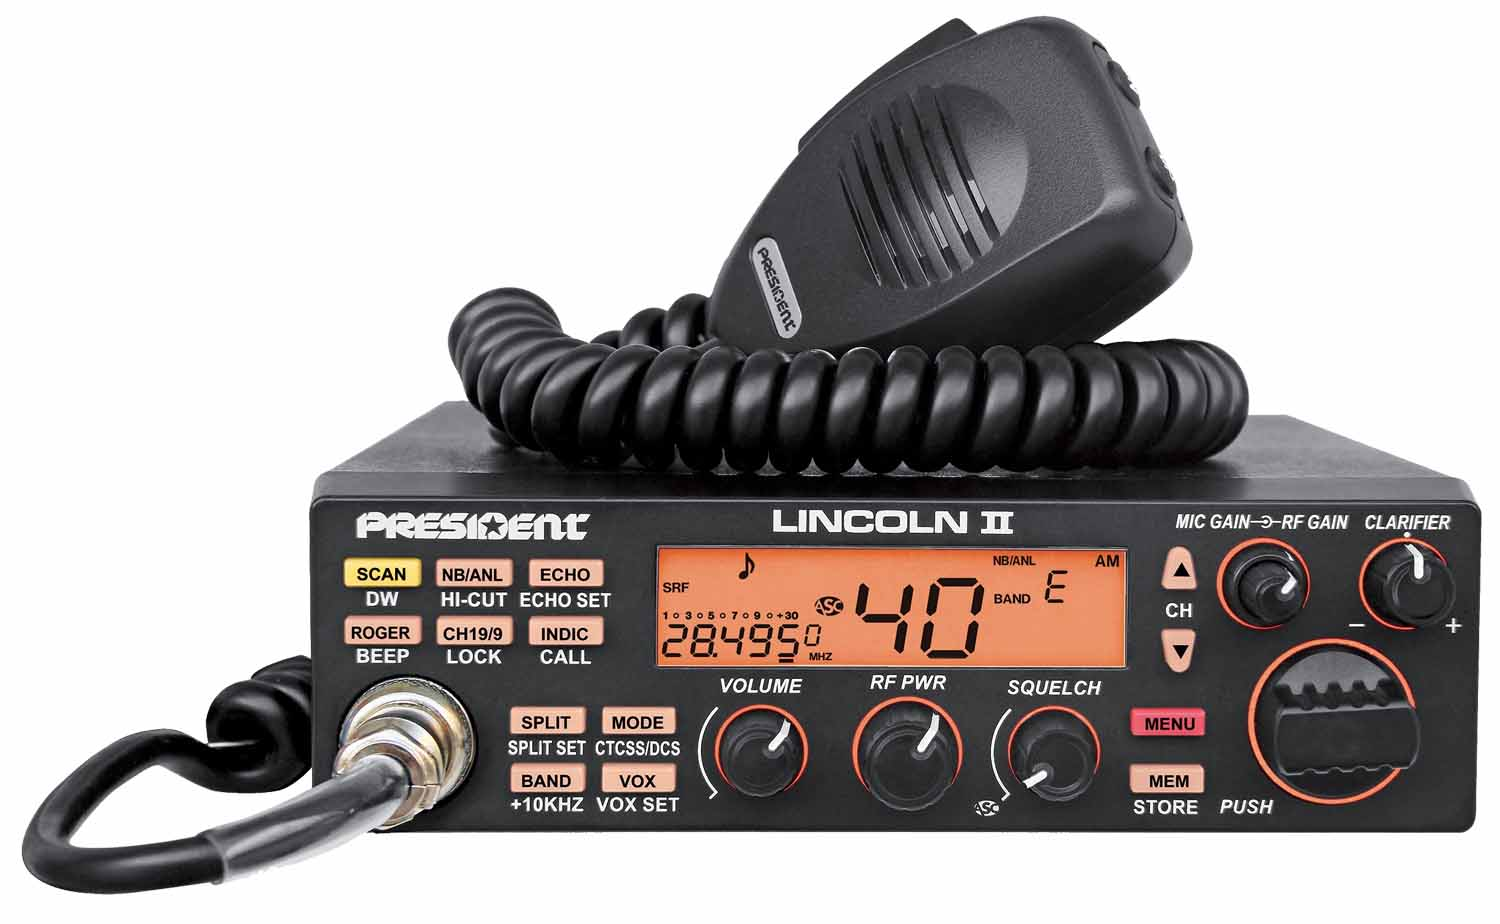 PRESIDENT - LINCOLNII 10 METER AMATEUR HAM RADIO WITH SELECTABLE 3 COLOR (AMBER, BLUE, GREEN) FACE, LCD FREQUENCY DISPLAY CTCSS/